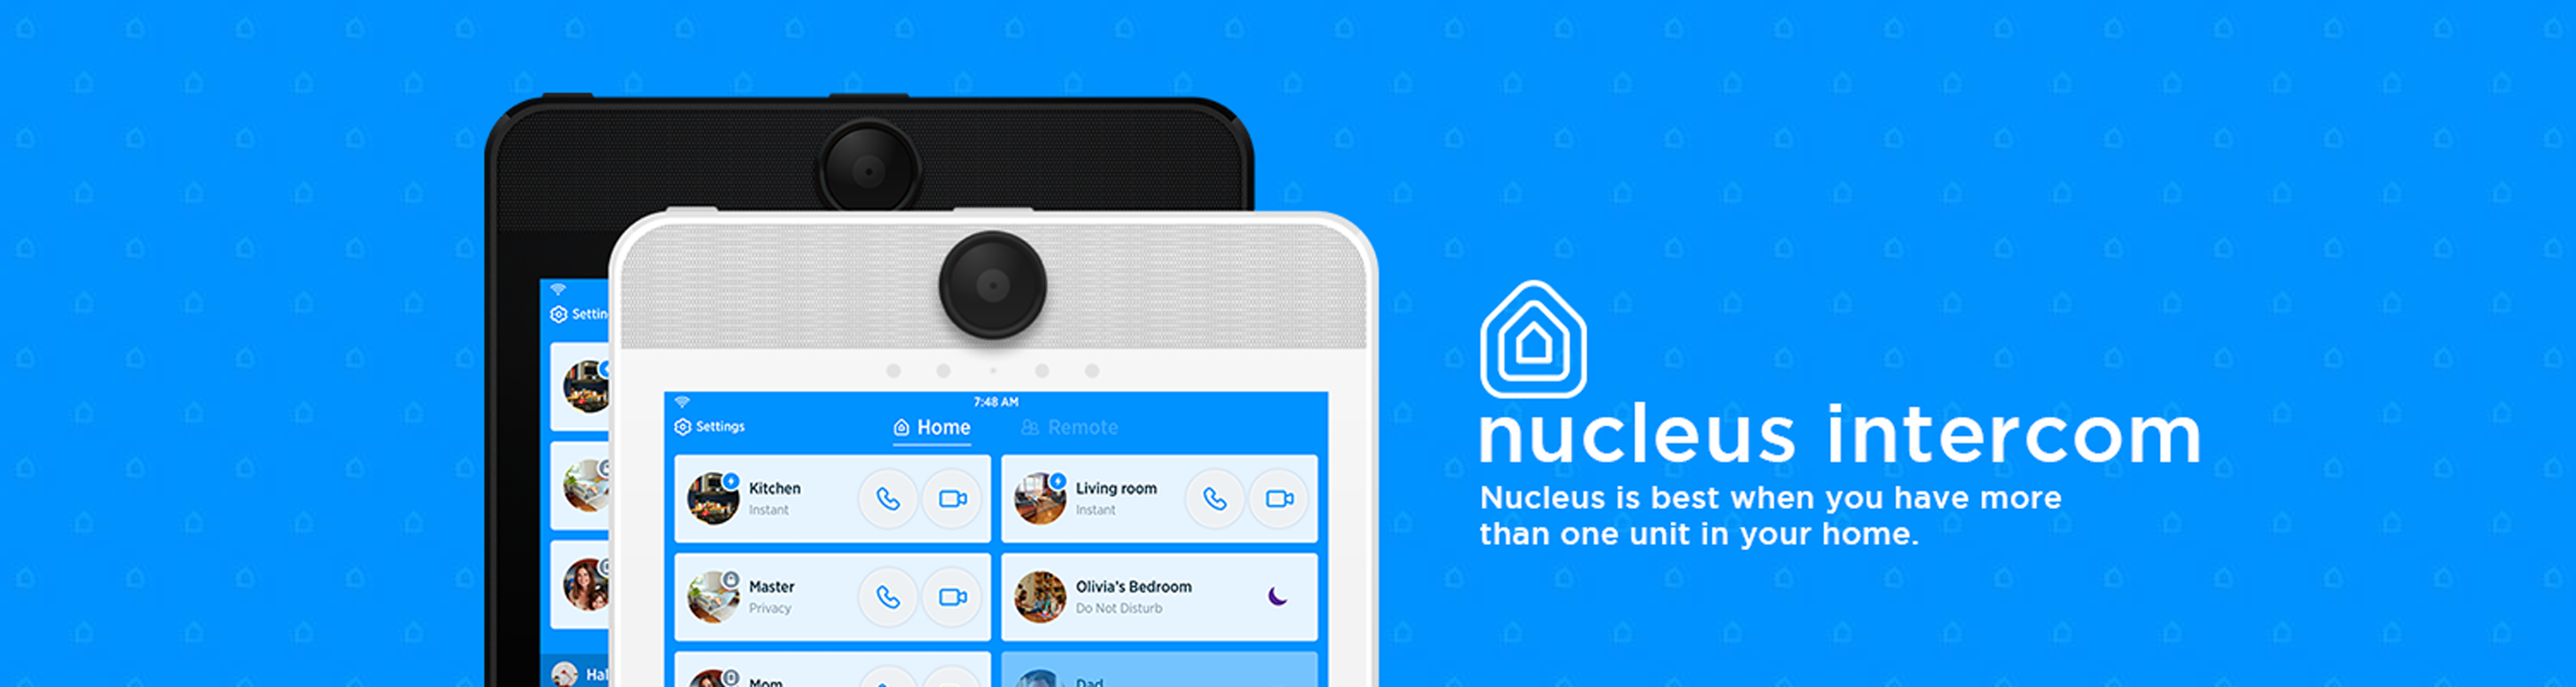 Nucleus Wireless Home Intercoms System